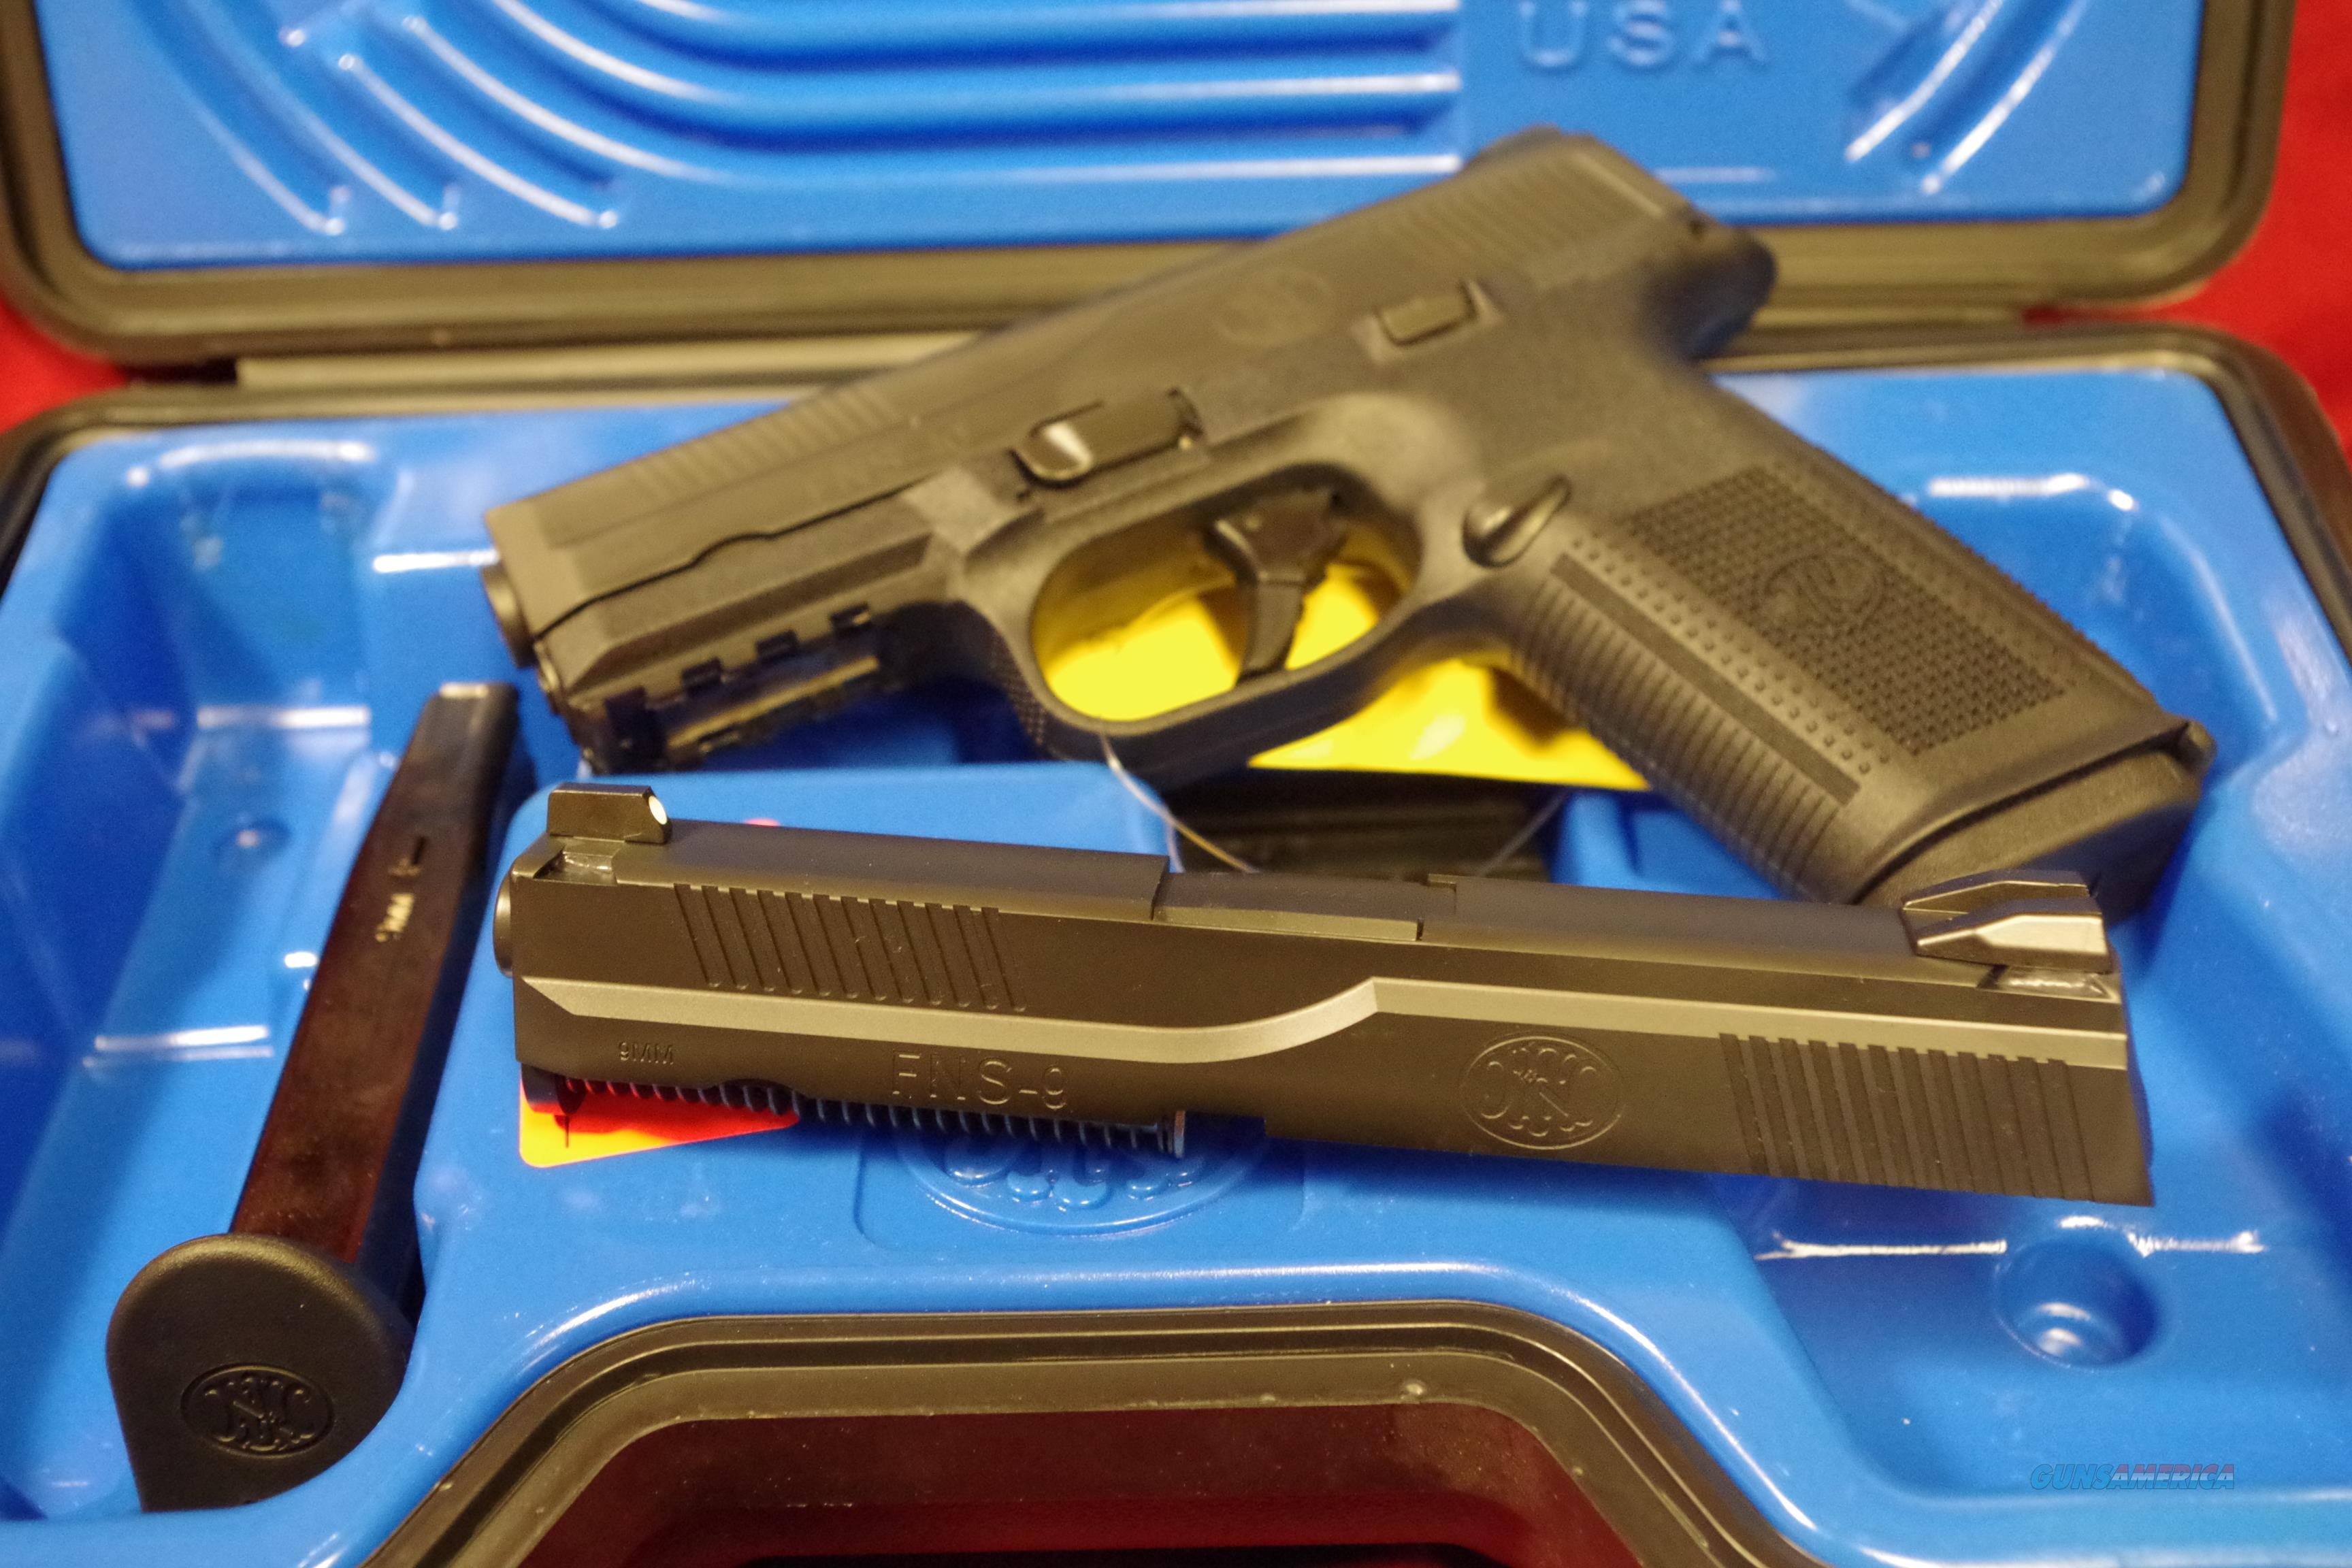 FNH USA FNS9/40 pistol. Two slides and barrels.  Guns > Pistols > FNH - Fabrique Nationale (FN) Pistols > FNS